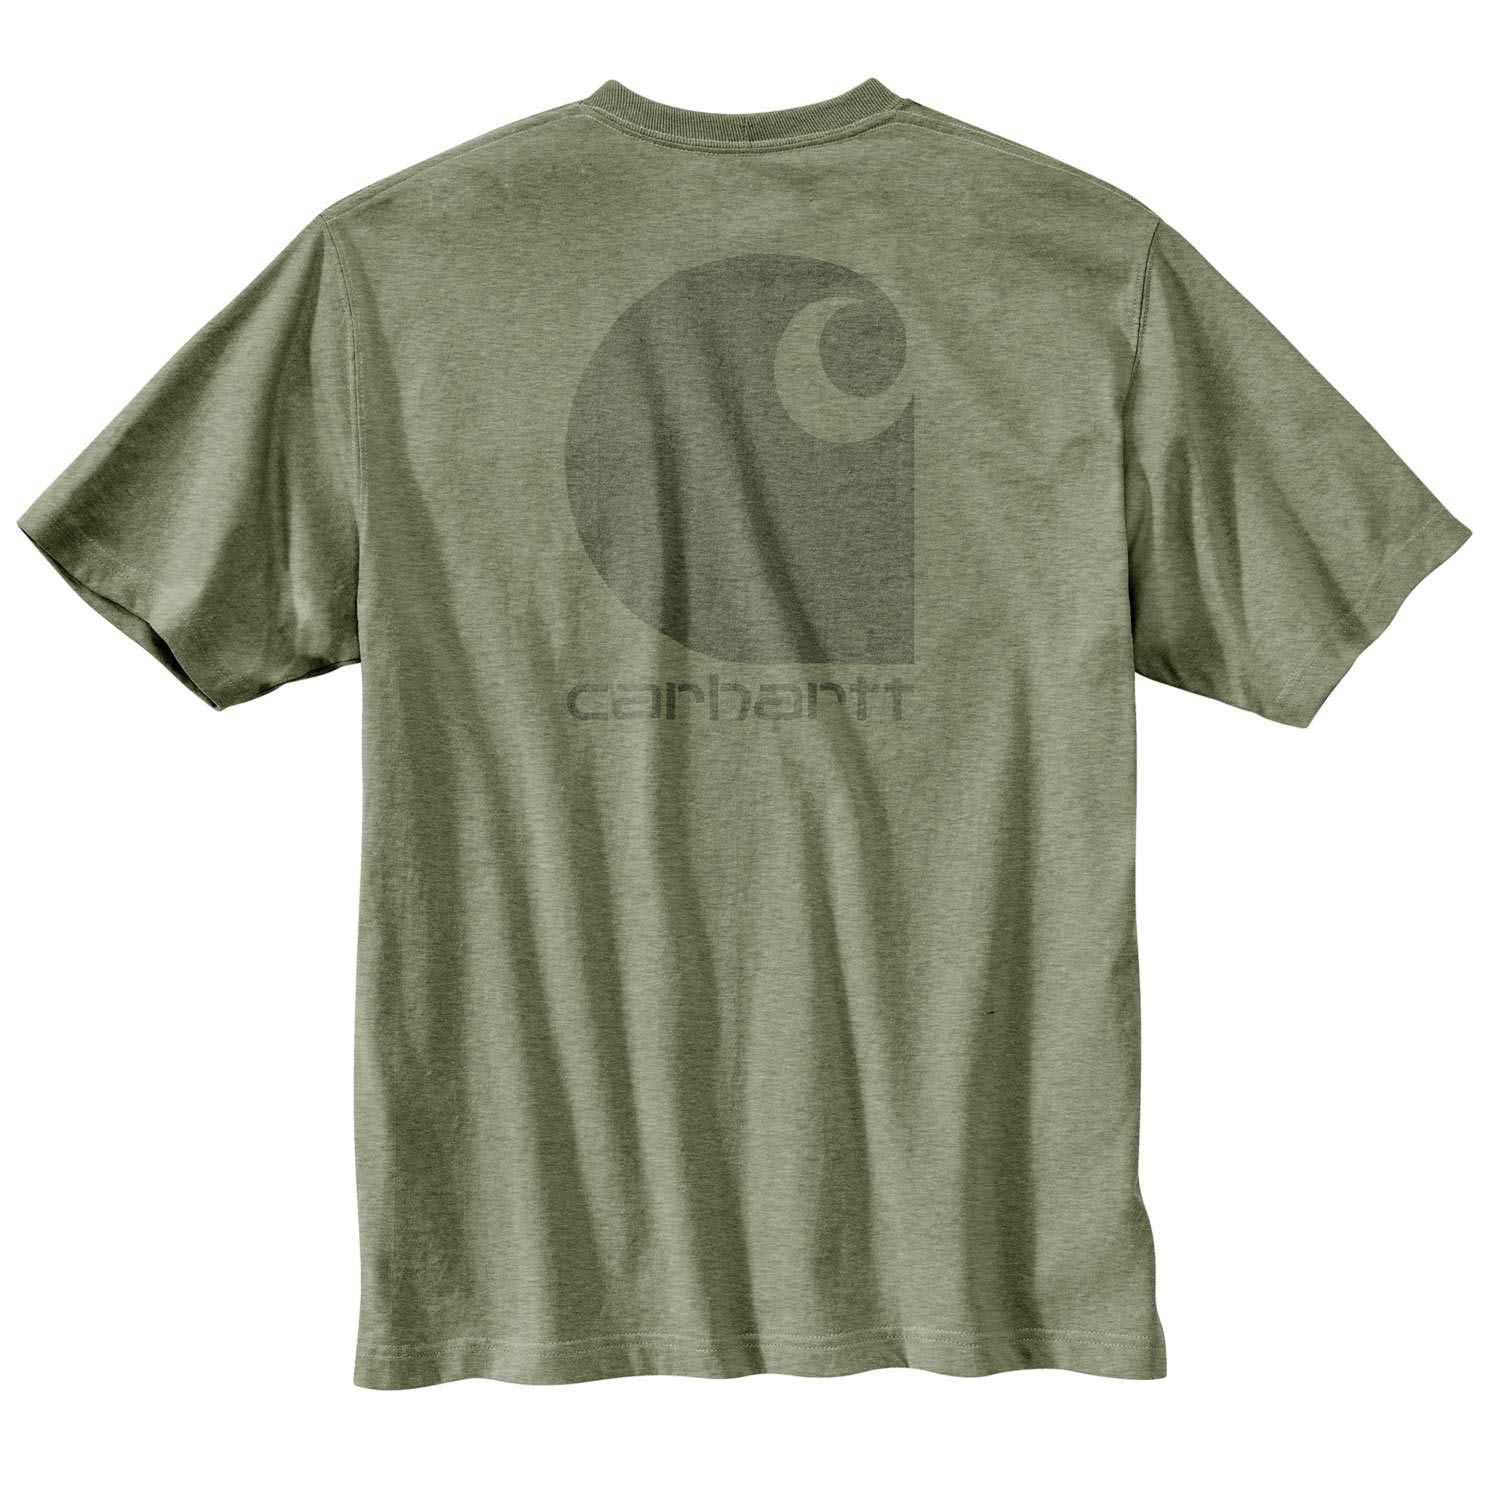 661d3ca55f Amazon.com: Carhartt Men's Workwear C-Logo Graphic Pocket SS T-Shirt:  Clothing